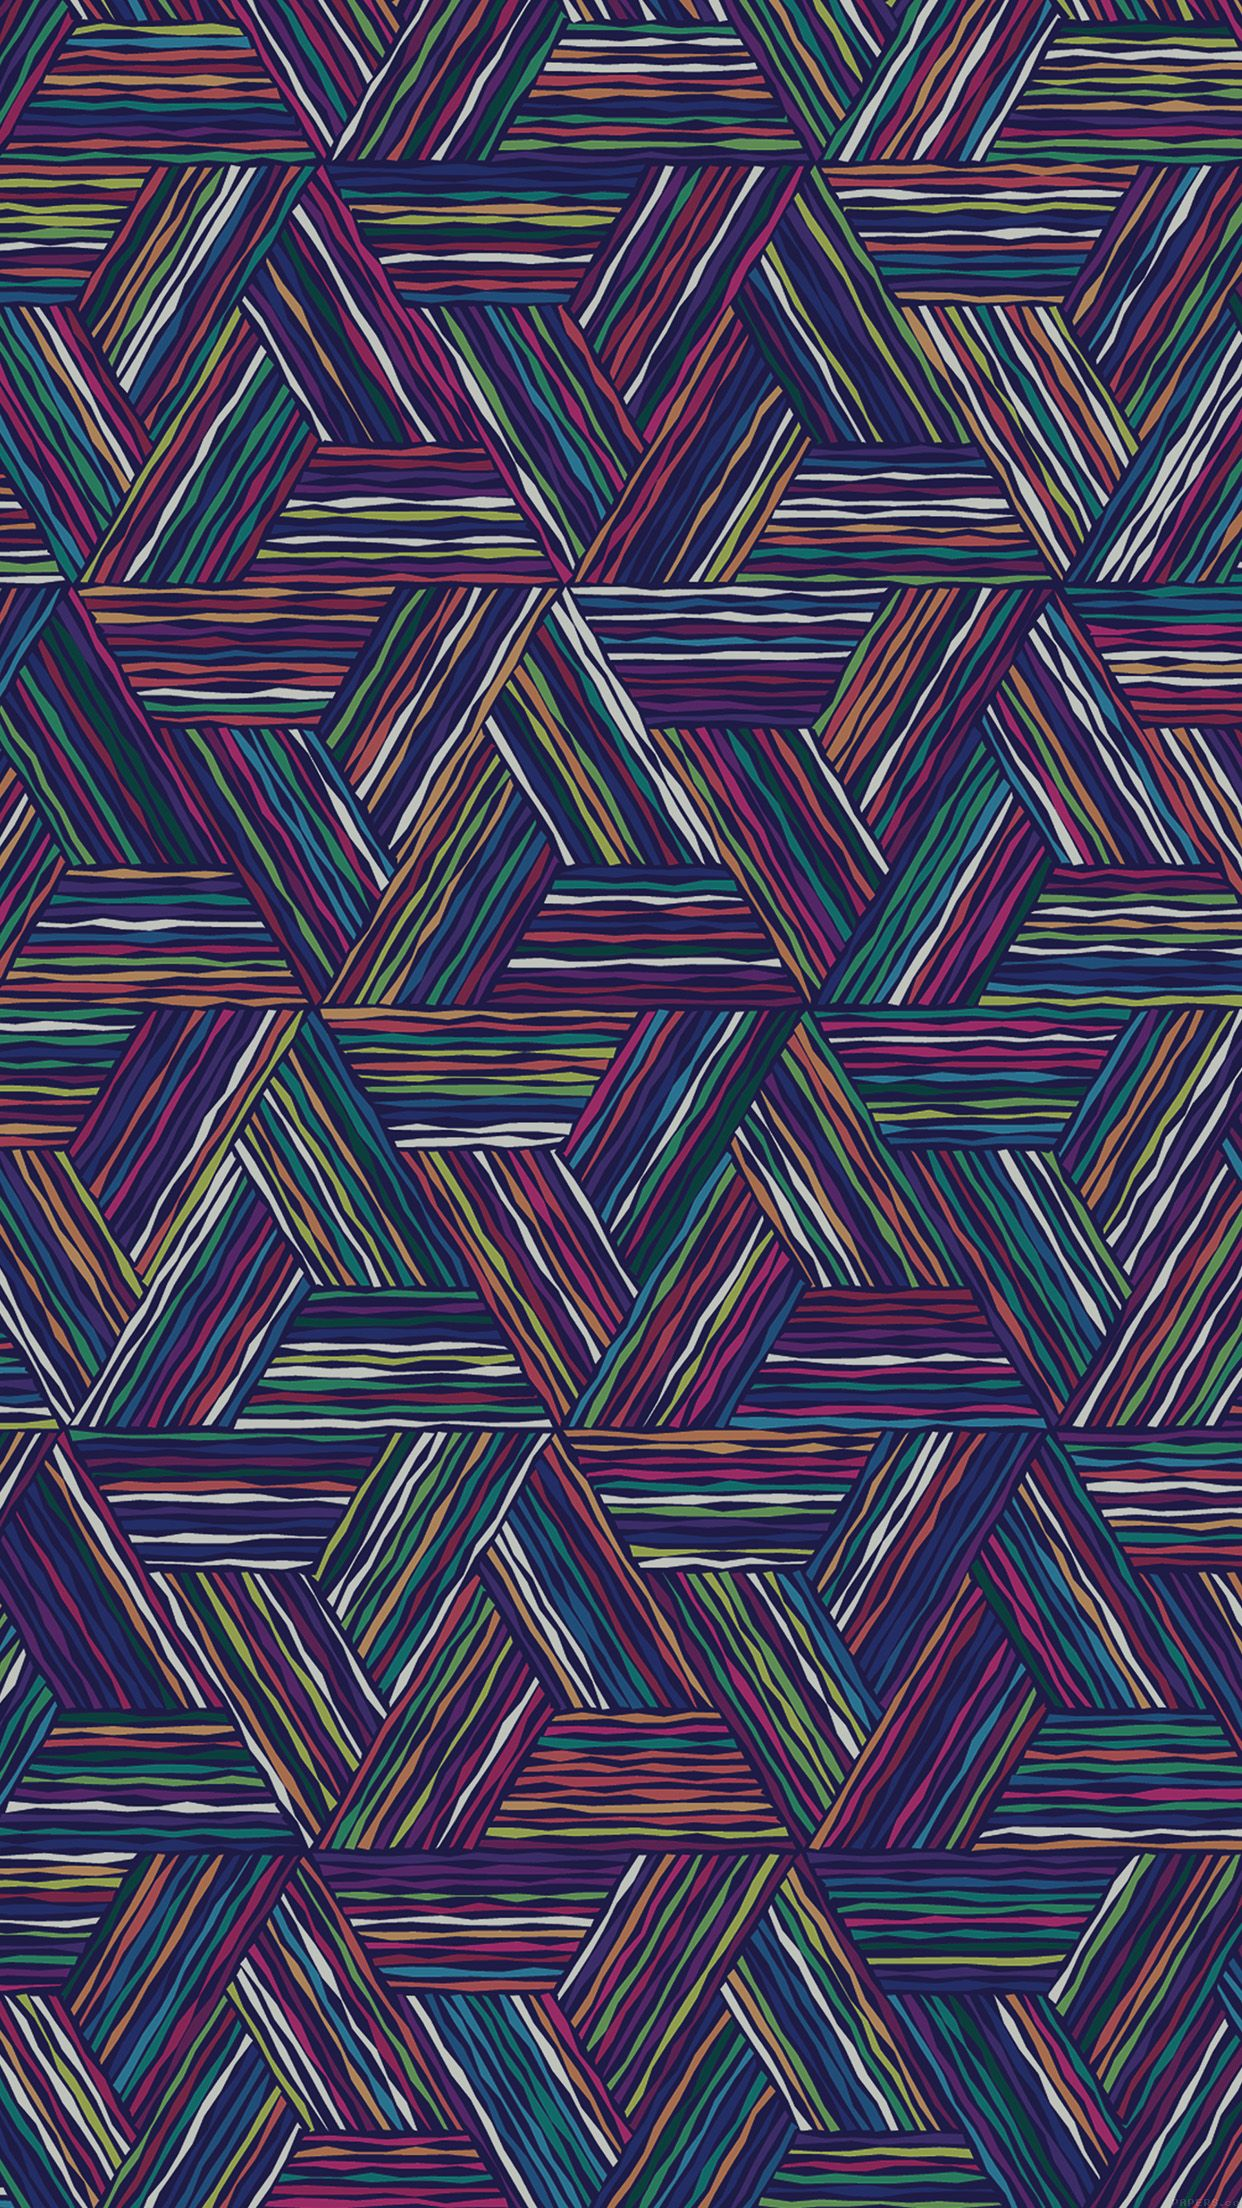 Hd wallpaper art - Triangle Colored Lines Digital Art Pattern Iphone 6 Plus Hd Wallpaper